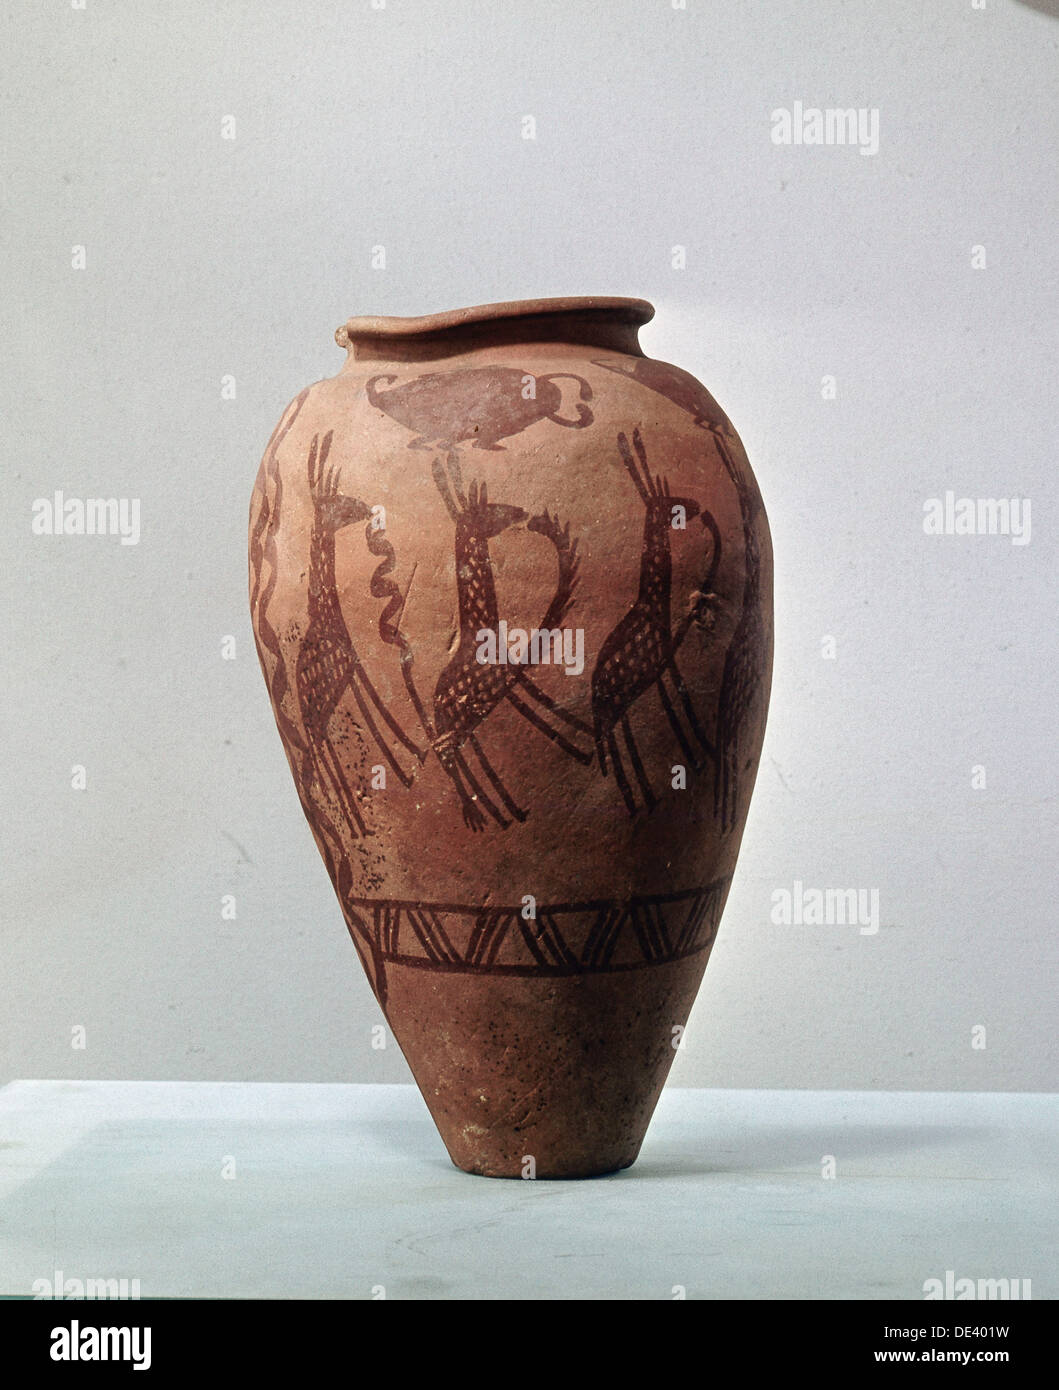 An urn decorated with a design of stylised giraffes. - Stock Image